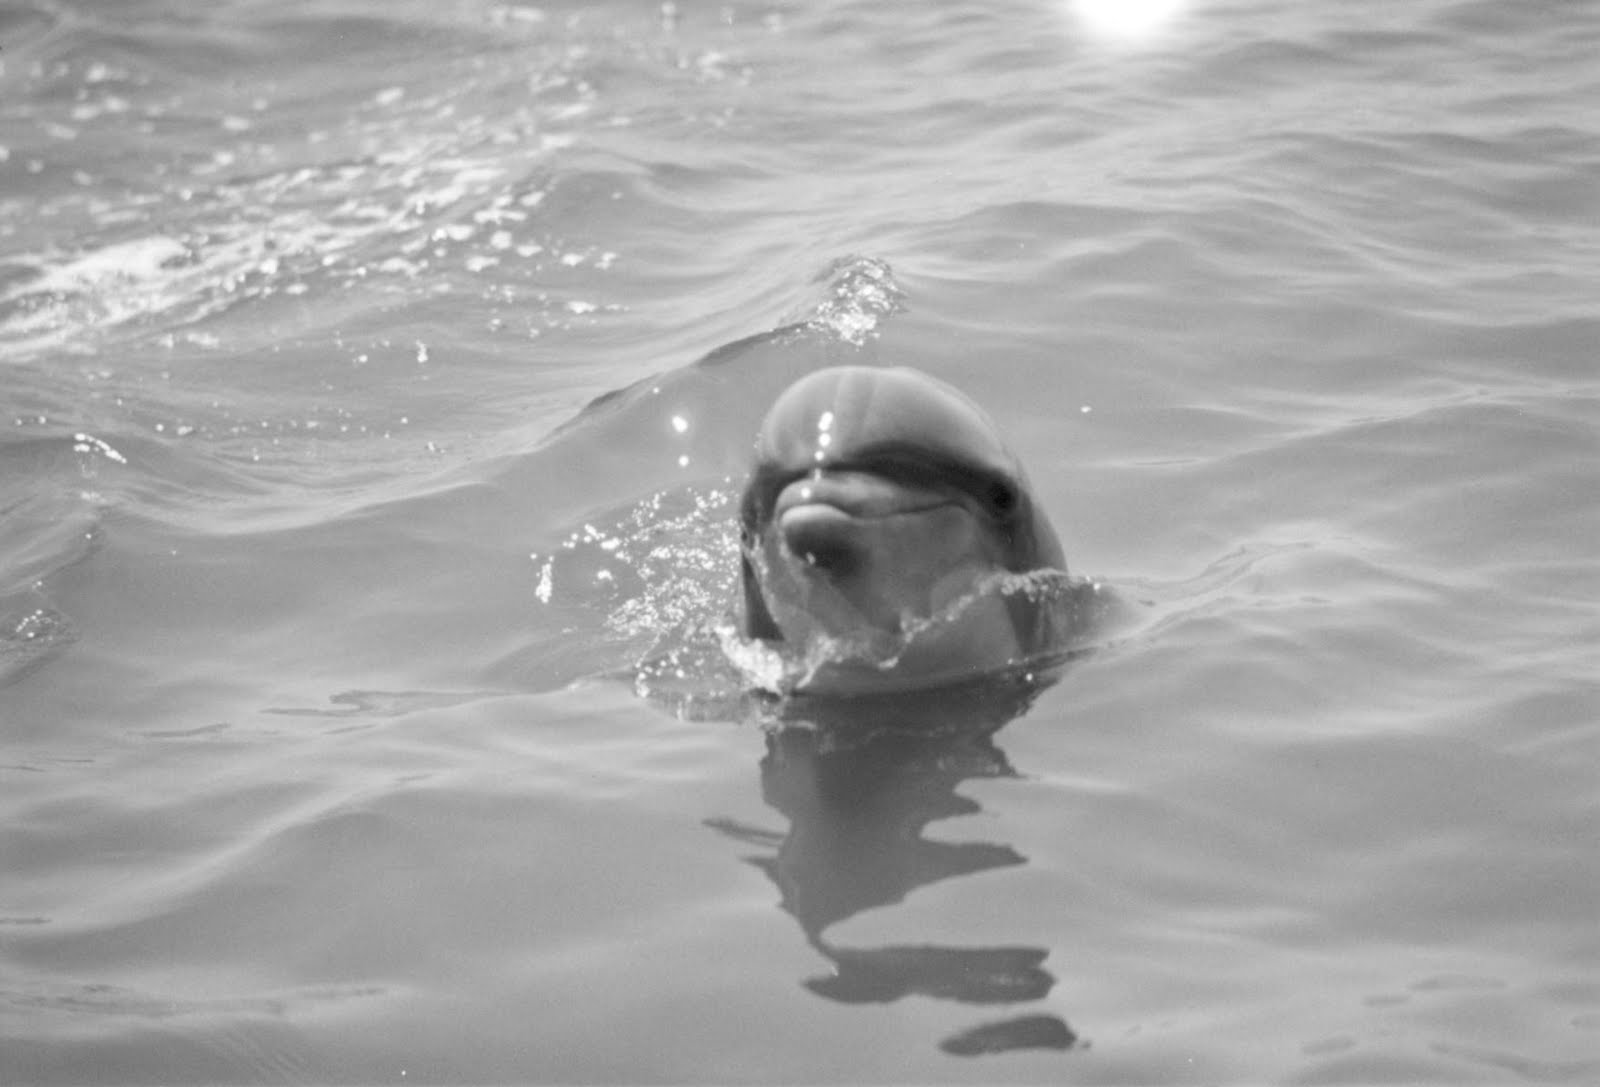 My Beautiful Picutre Album: Dolphins' Cute Faces